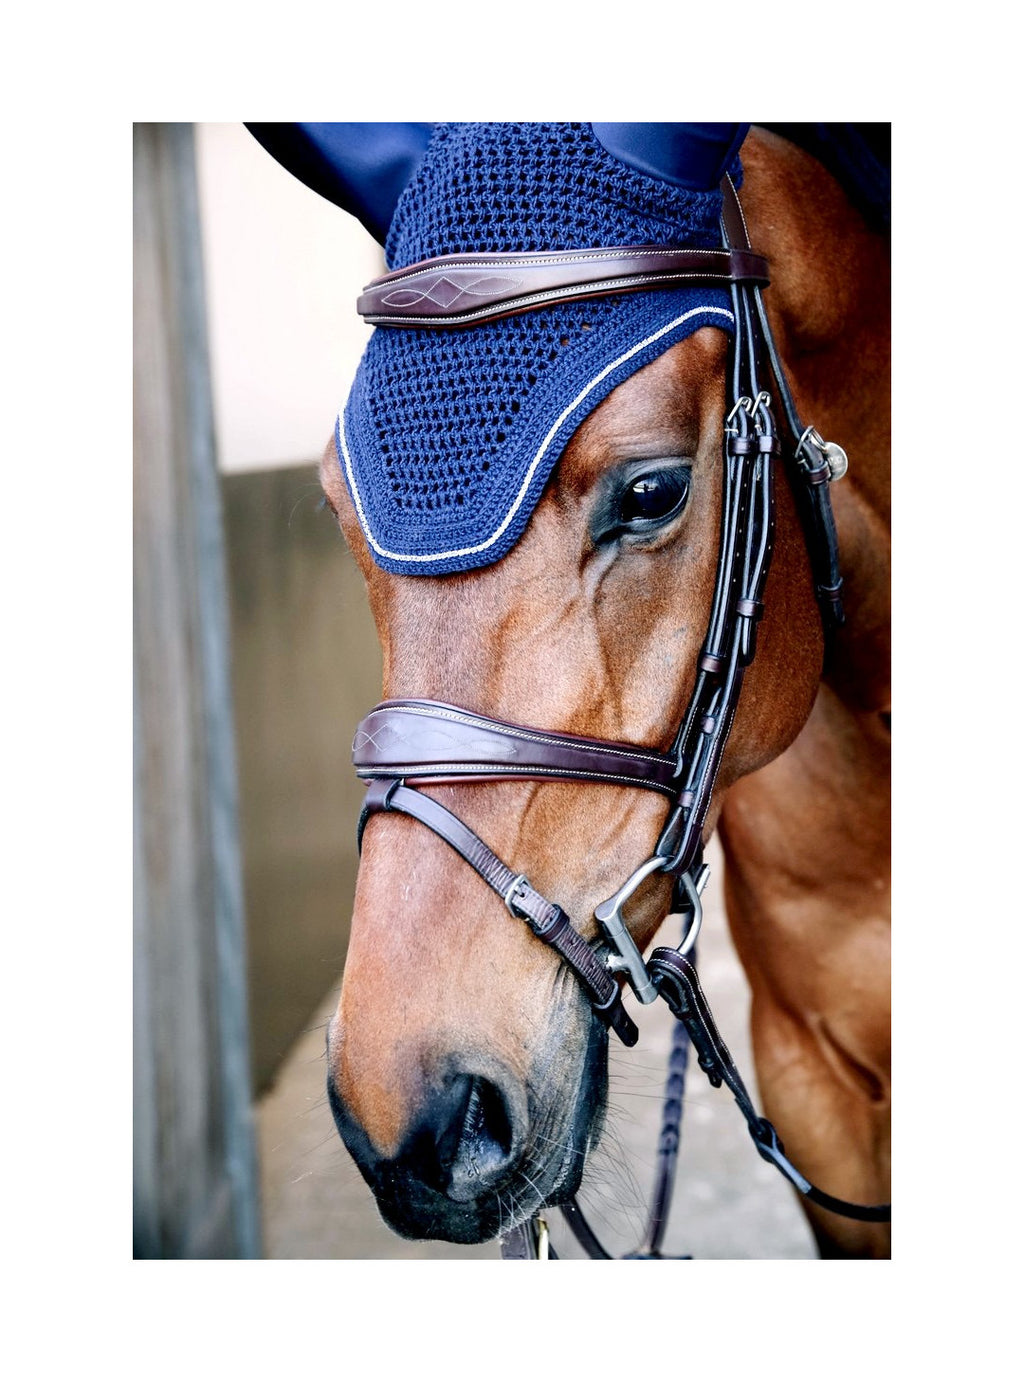 Dyon Anatomic flash noseband